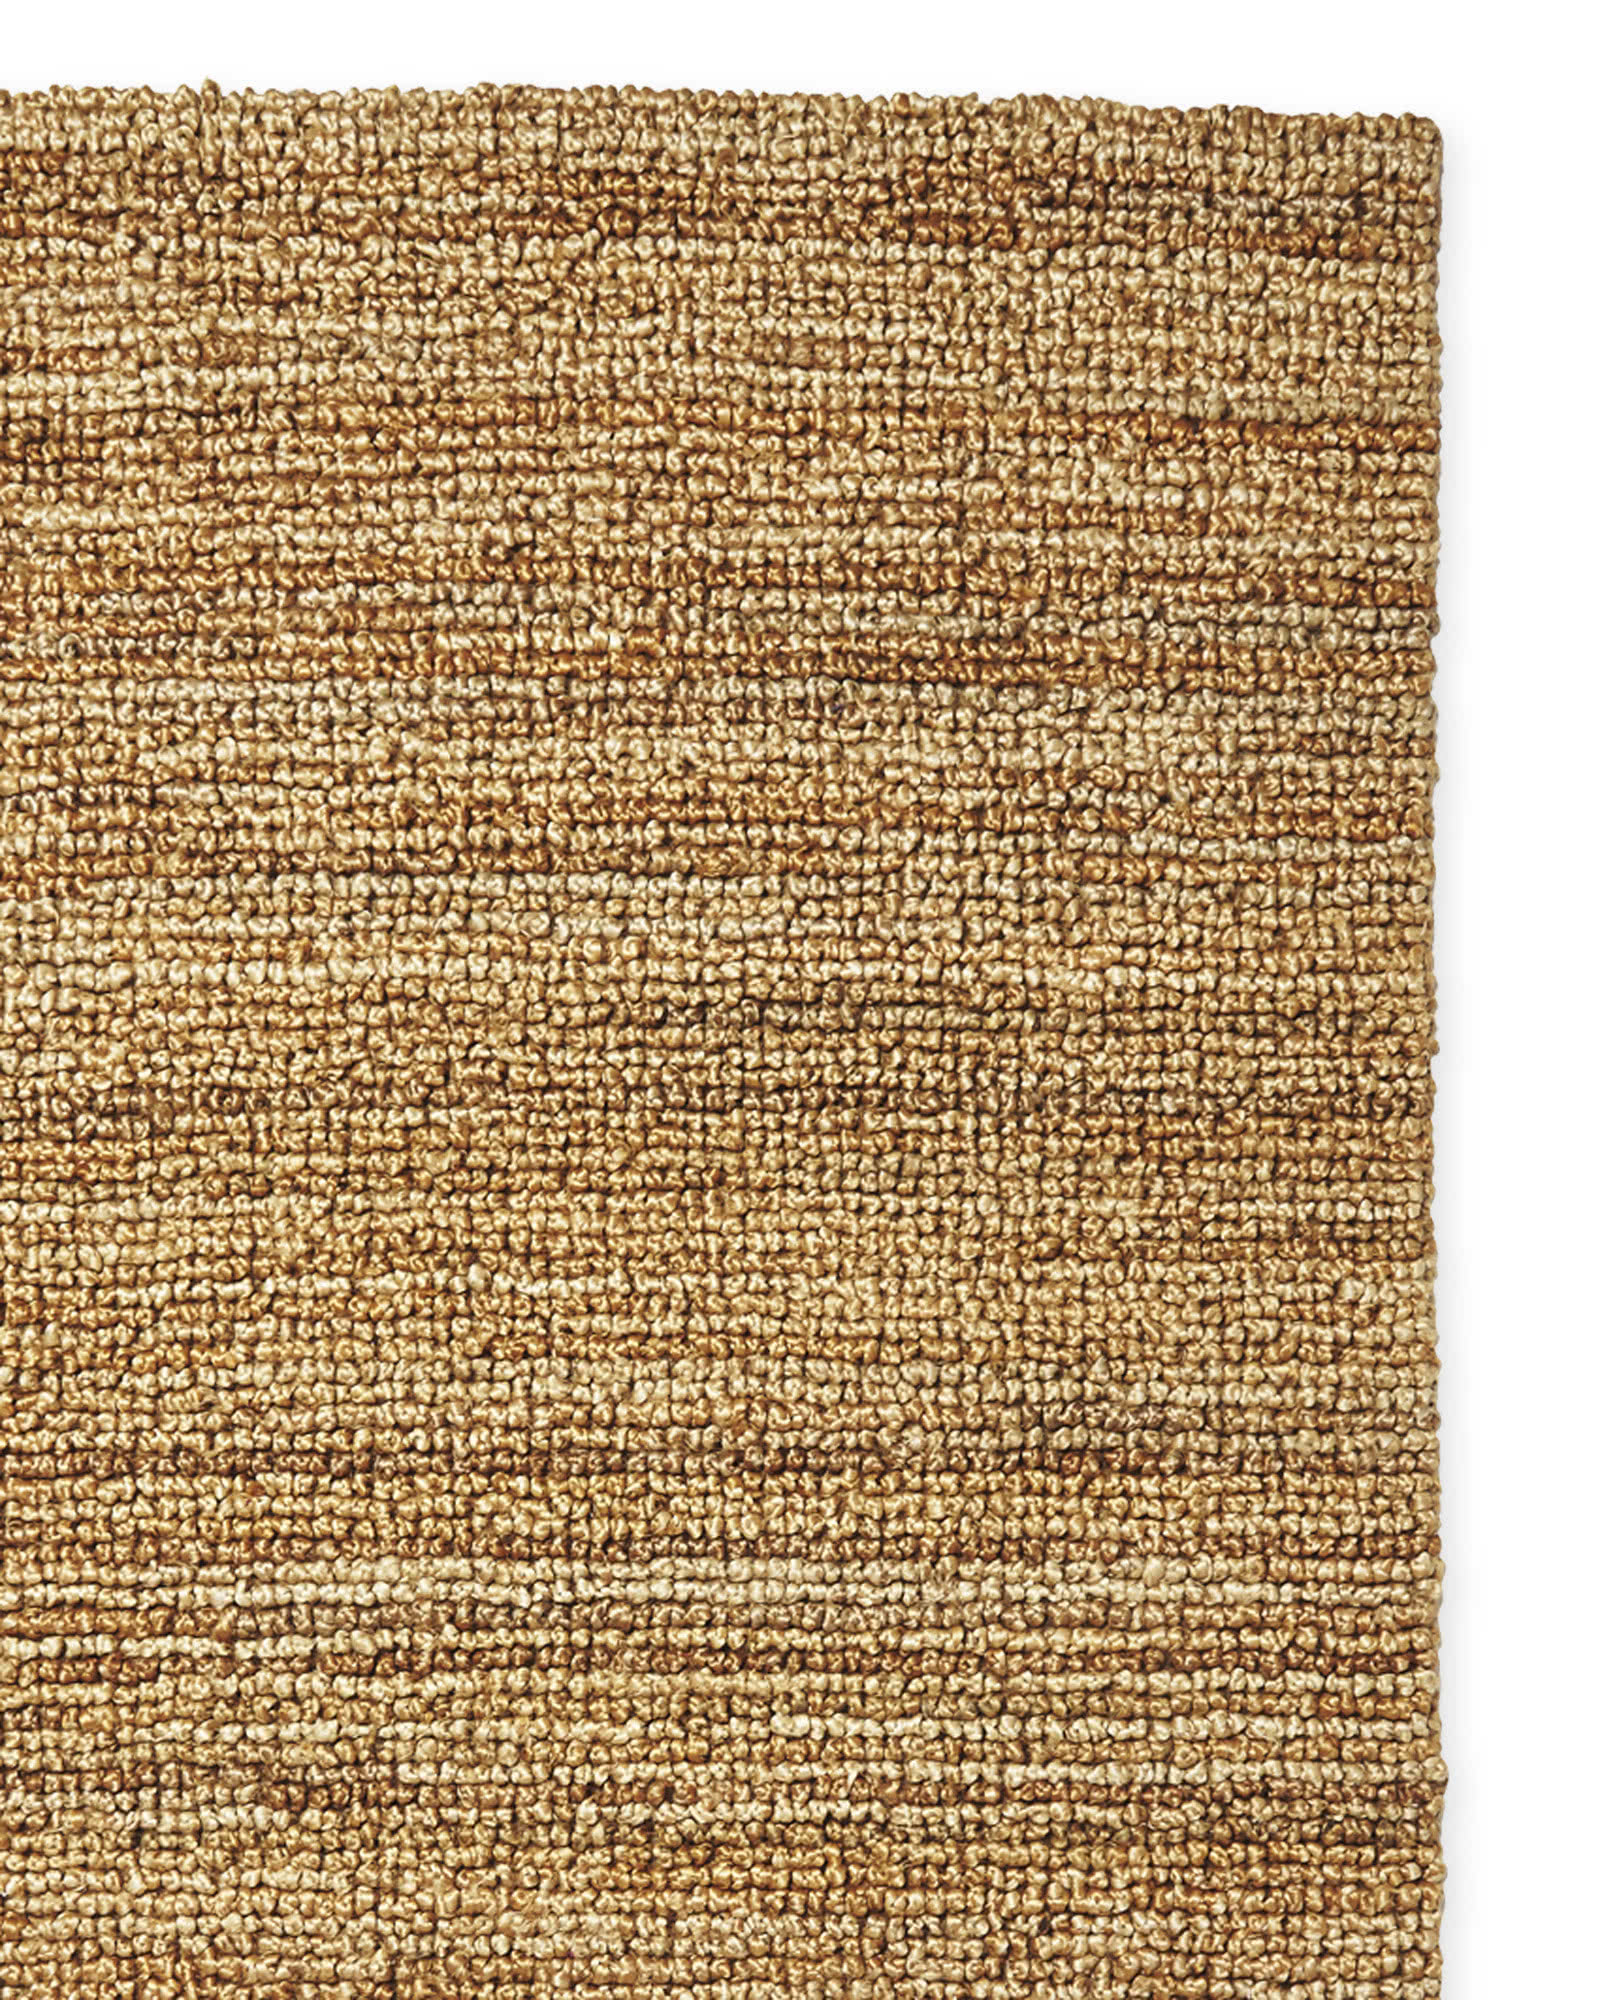 Textured Jute Rug Serena Amp Lily